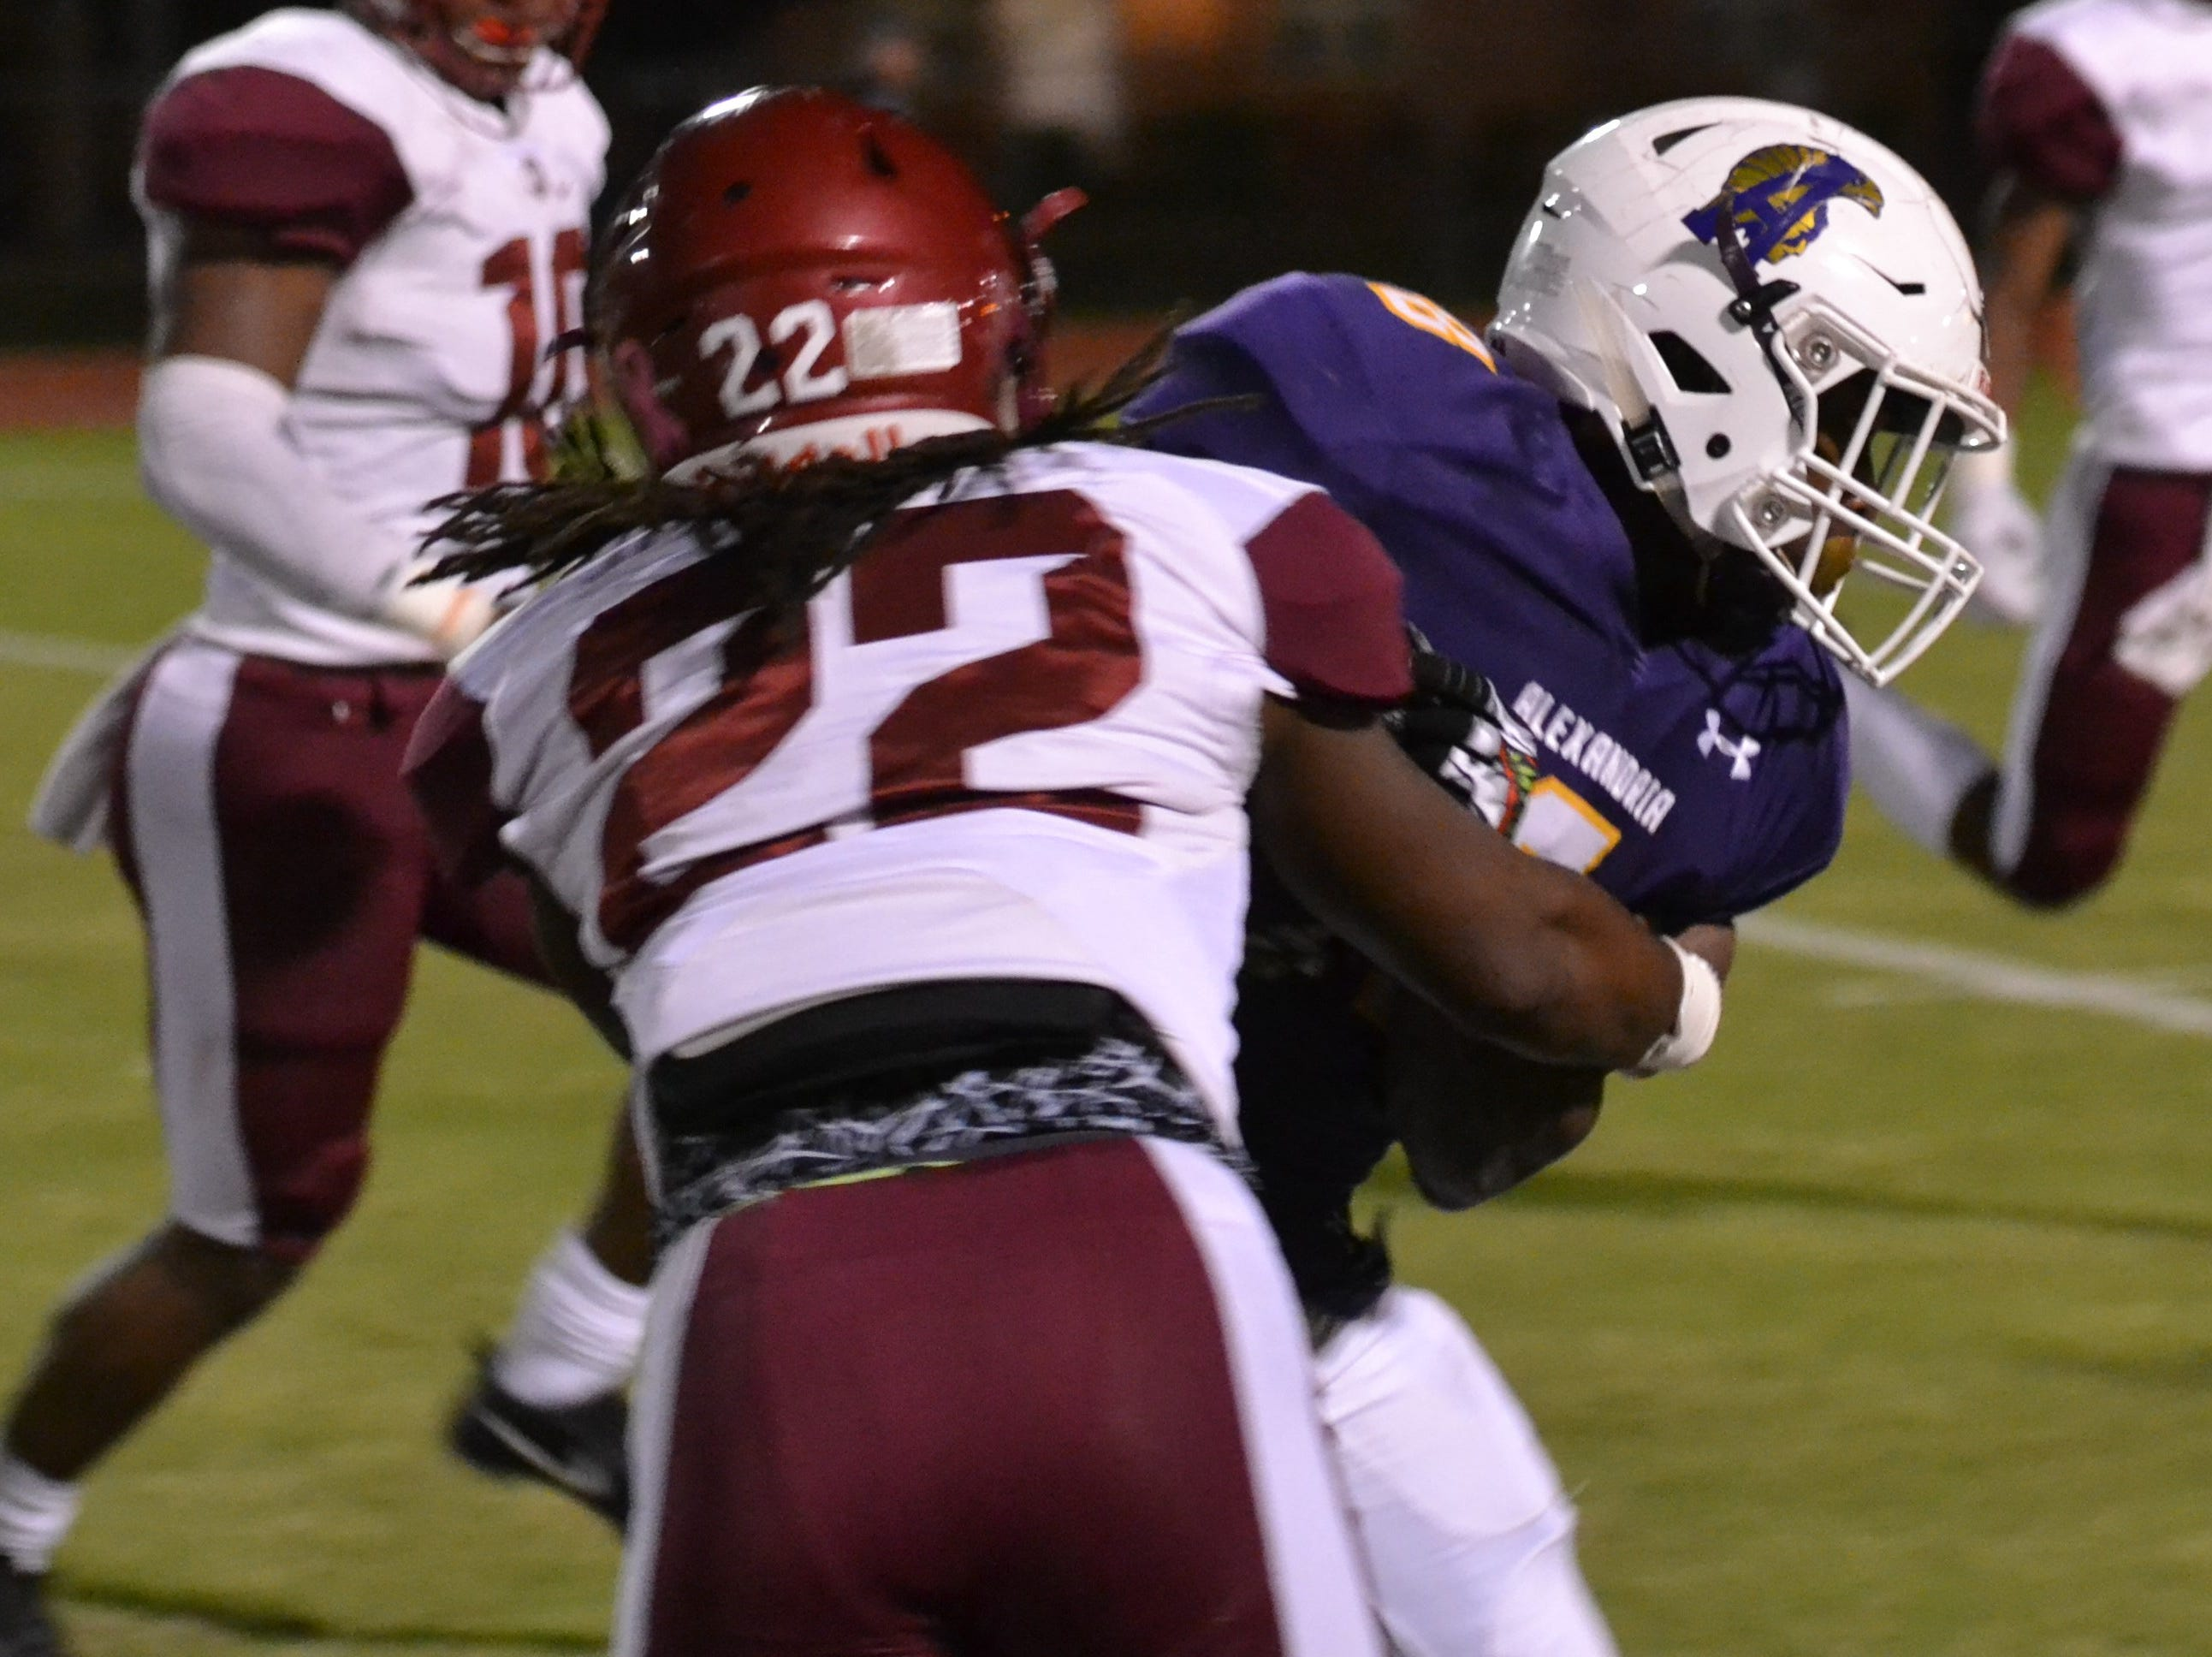 Richard Chark fights for yards as he tries to break the tackle of Ouachita's Elijah Hall (22). The ASH Trojans fell to the Ouachita Parish Lions 42-20 Thursday, Nov. 1, at Alexandria Senior High.